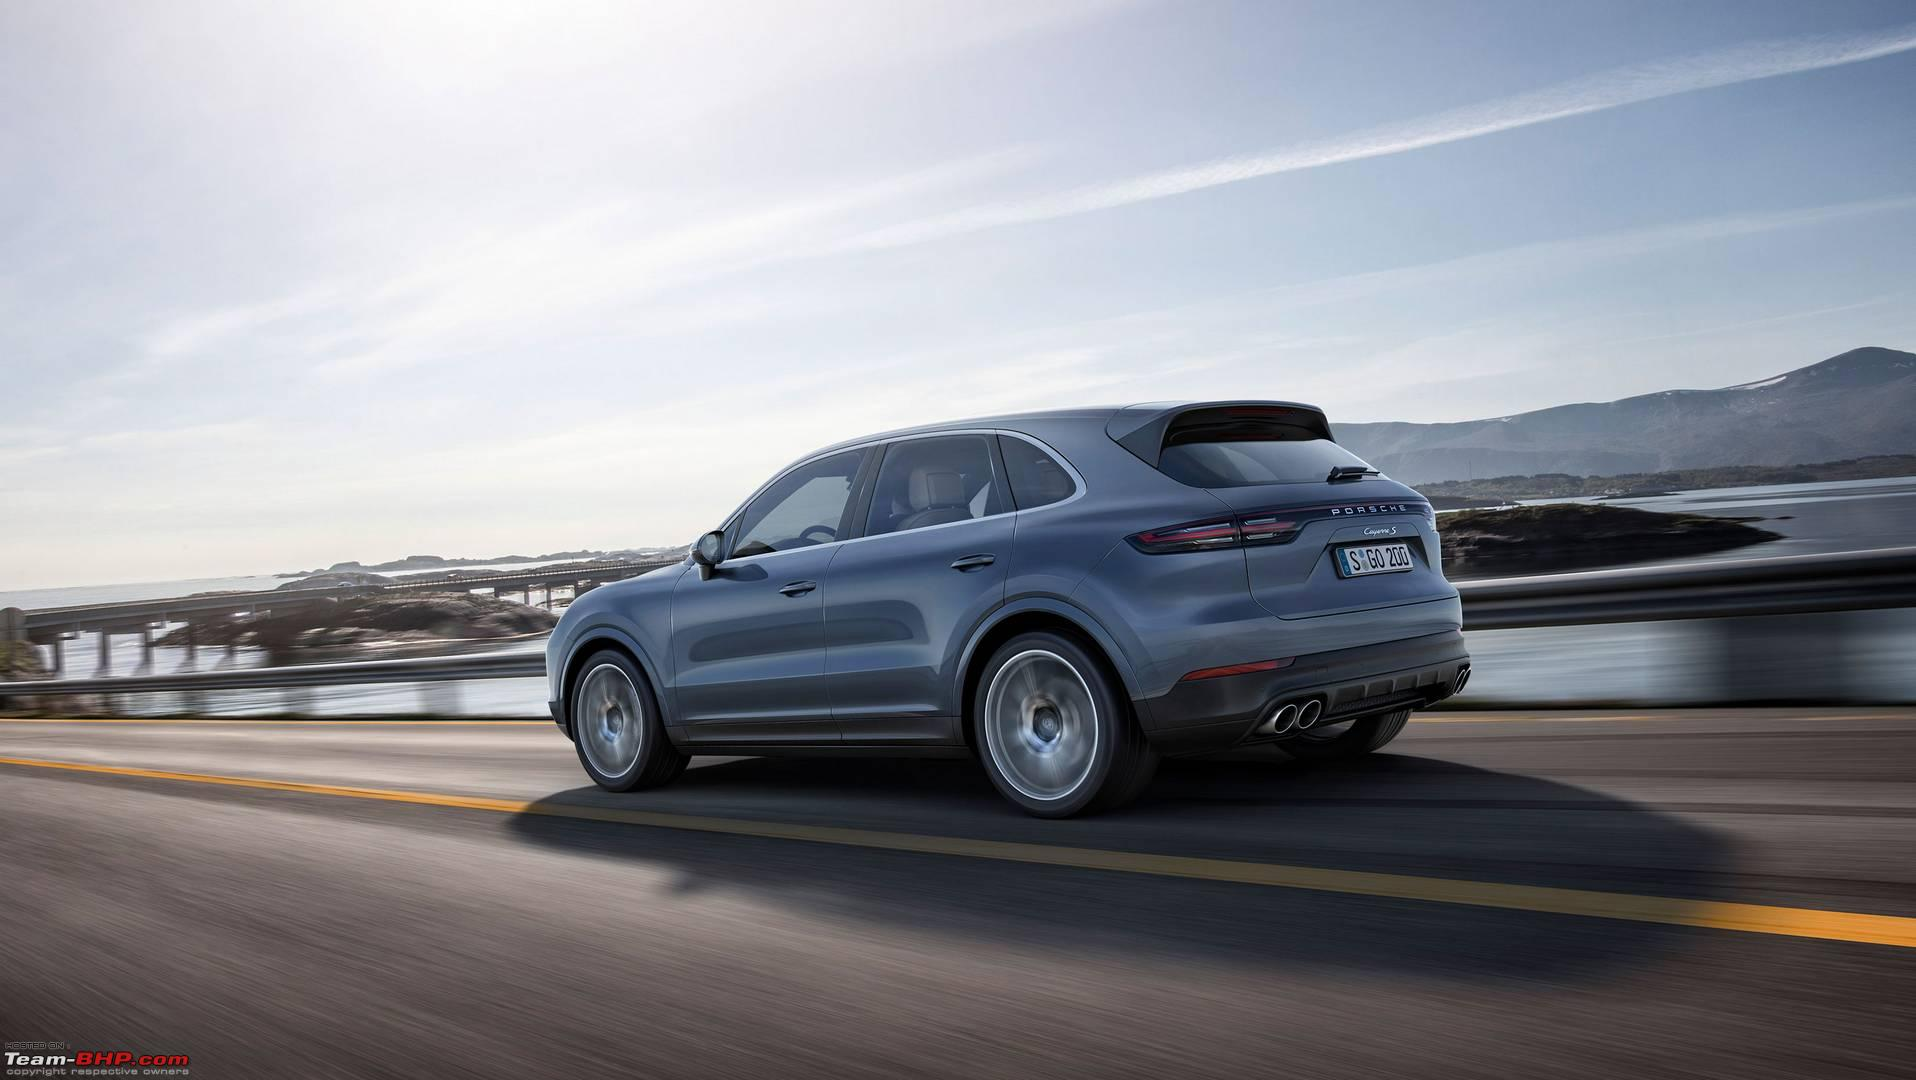 Rumour 3rd Gen Porsche Cayenne To Be Launched In Mid 2018